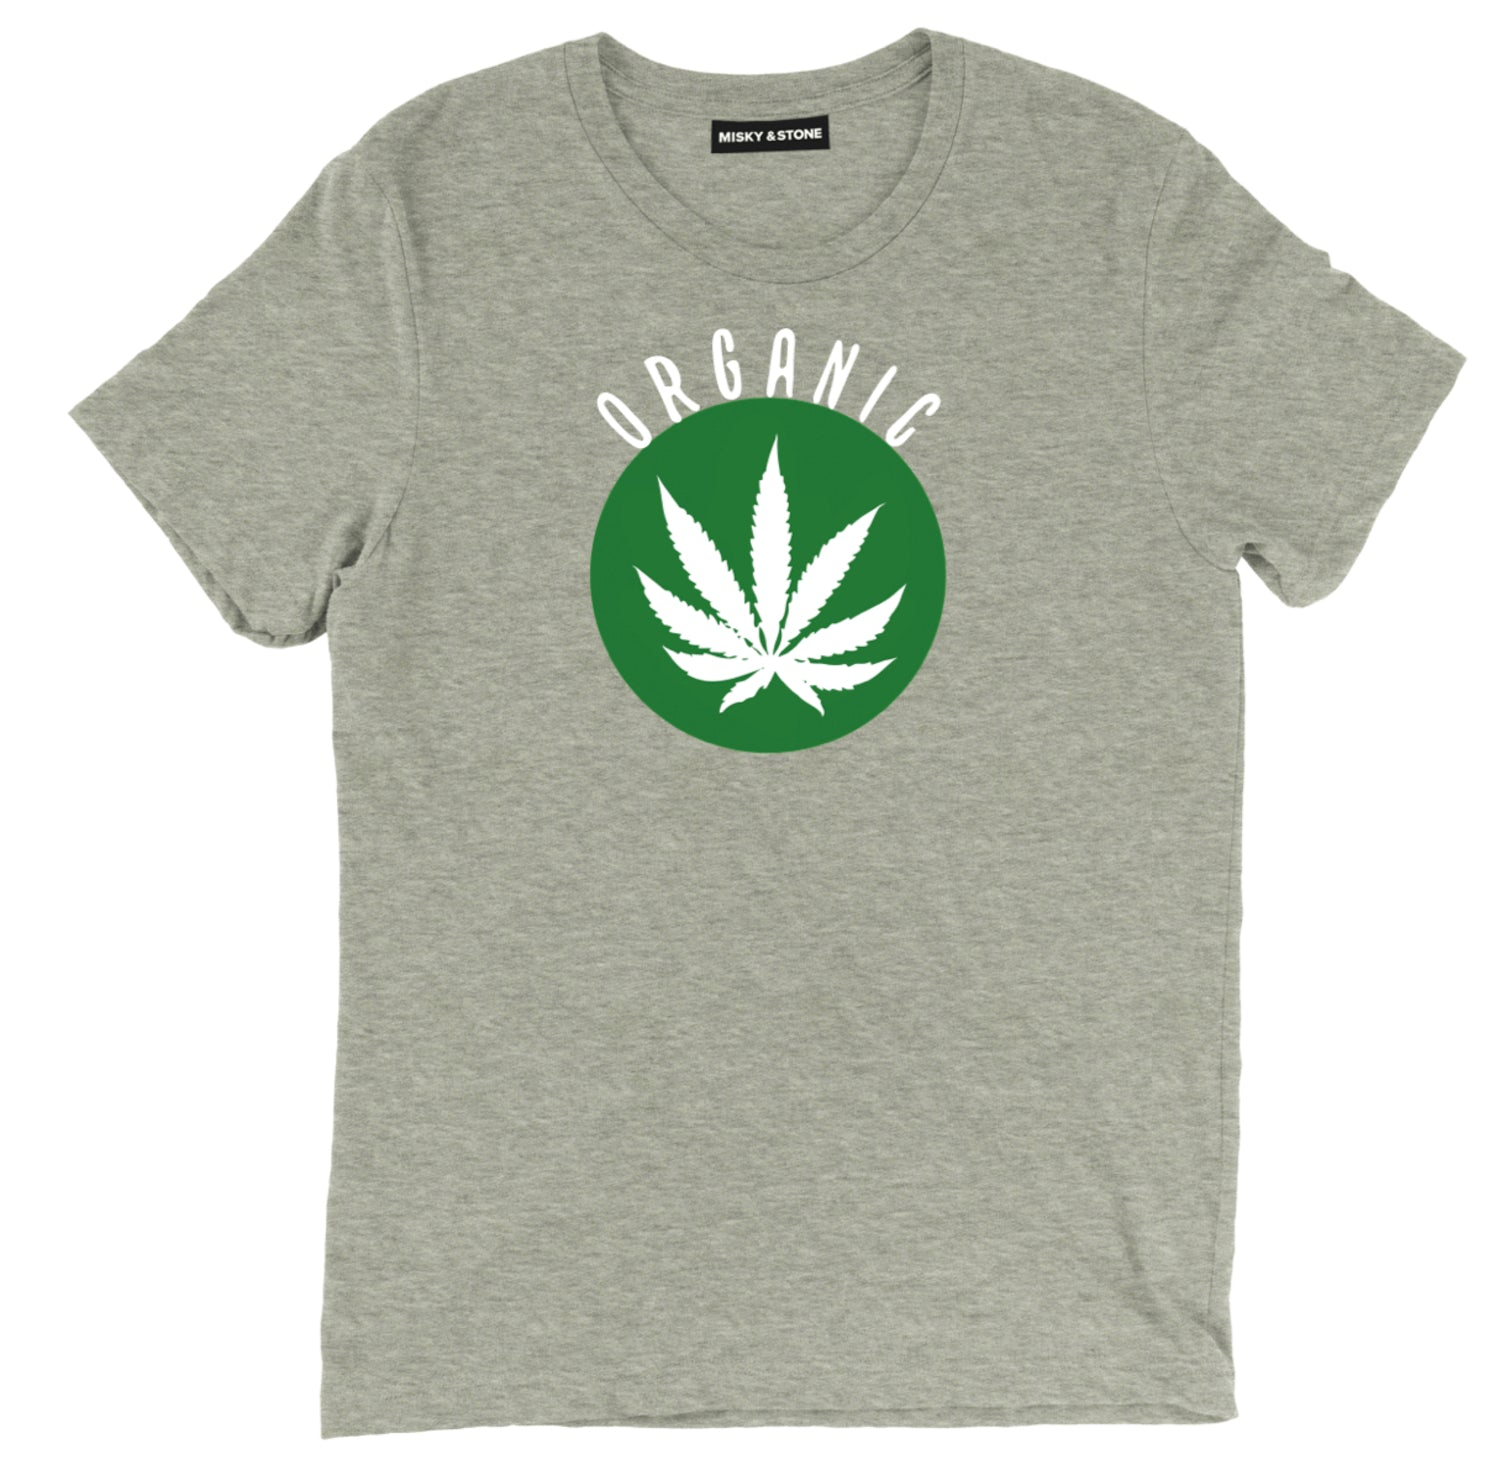 organic weed tee shirt, organic weed apparel, organic weed merch, weed clothing, organic organic 420 tee shirt, organic 420 apparel, 420 merch, 420 clothing, funny 420 tee shirt, marijuana tee shirt, marijuana apparel, marijuana merch, marijuana clothing, cannabis wear, pot tee shirt